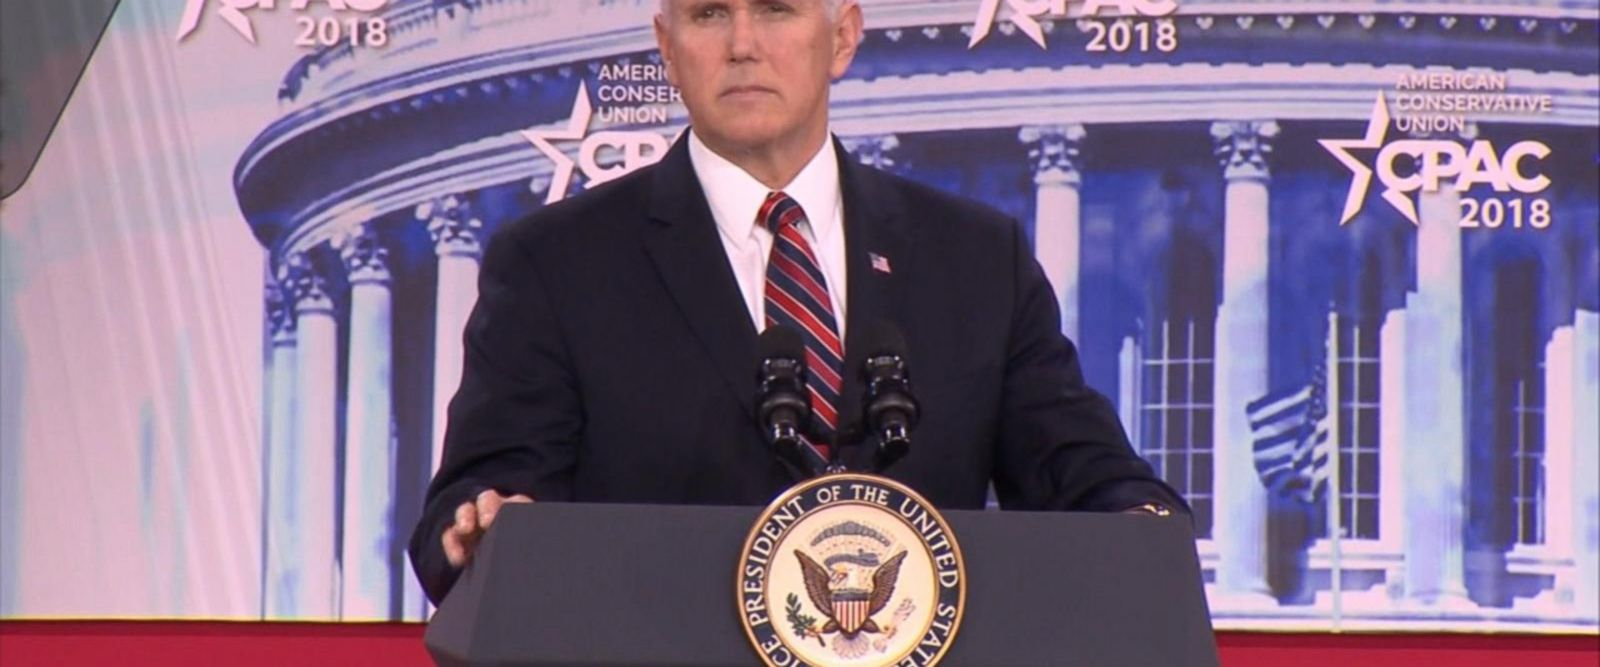 VIDEO: Vice President Mike Pence said the school safety will be a top national priority in a speech at the Conservative Political Action Conference on Thursday.